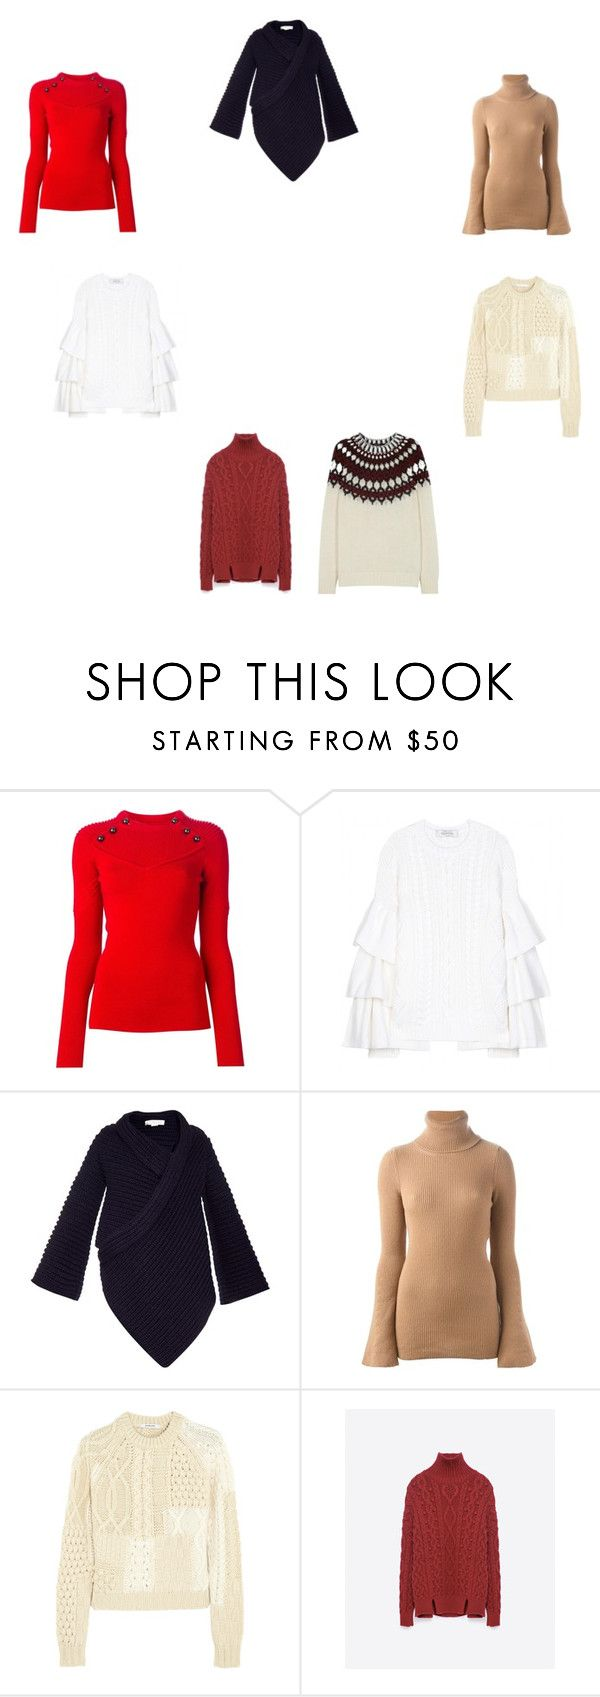 """knit"" by pollianidotcom on Polyvore featuring Isabel Marant, Valentino, STELLA McCARTNEY, Carven, Zara and Gucci"